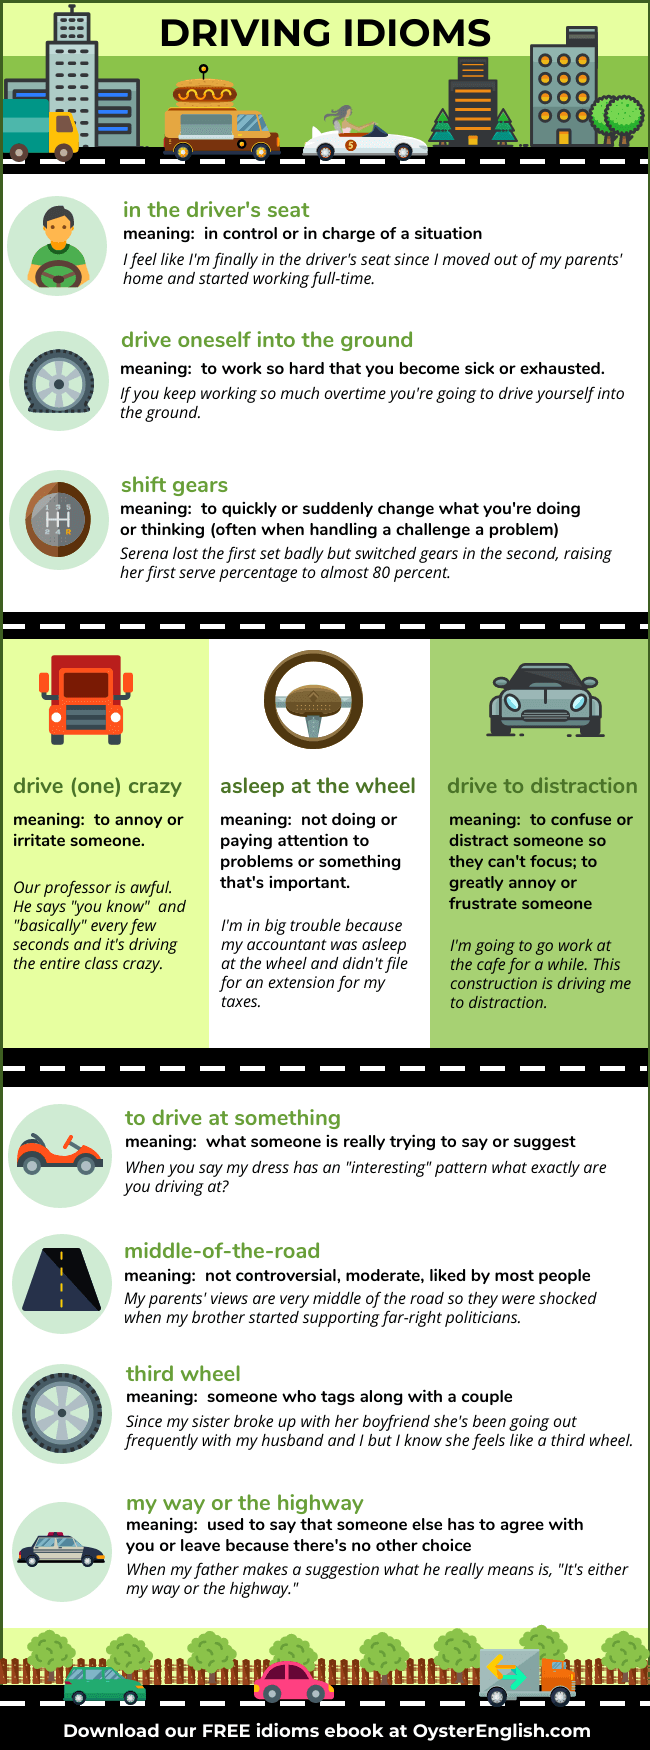 An infographic with 10 driving idioms featured on this web page, with definitions and sentence examples